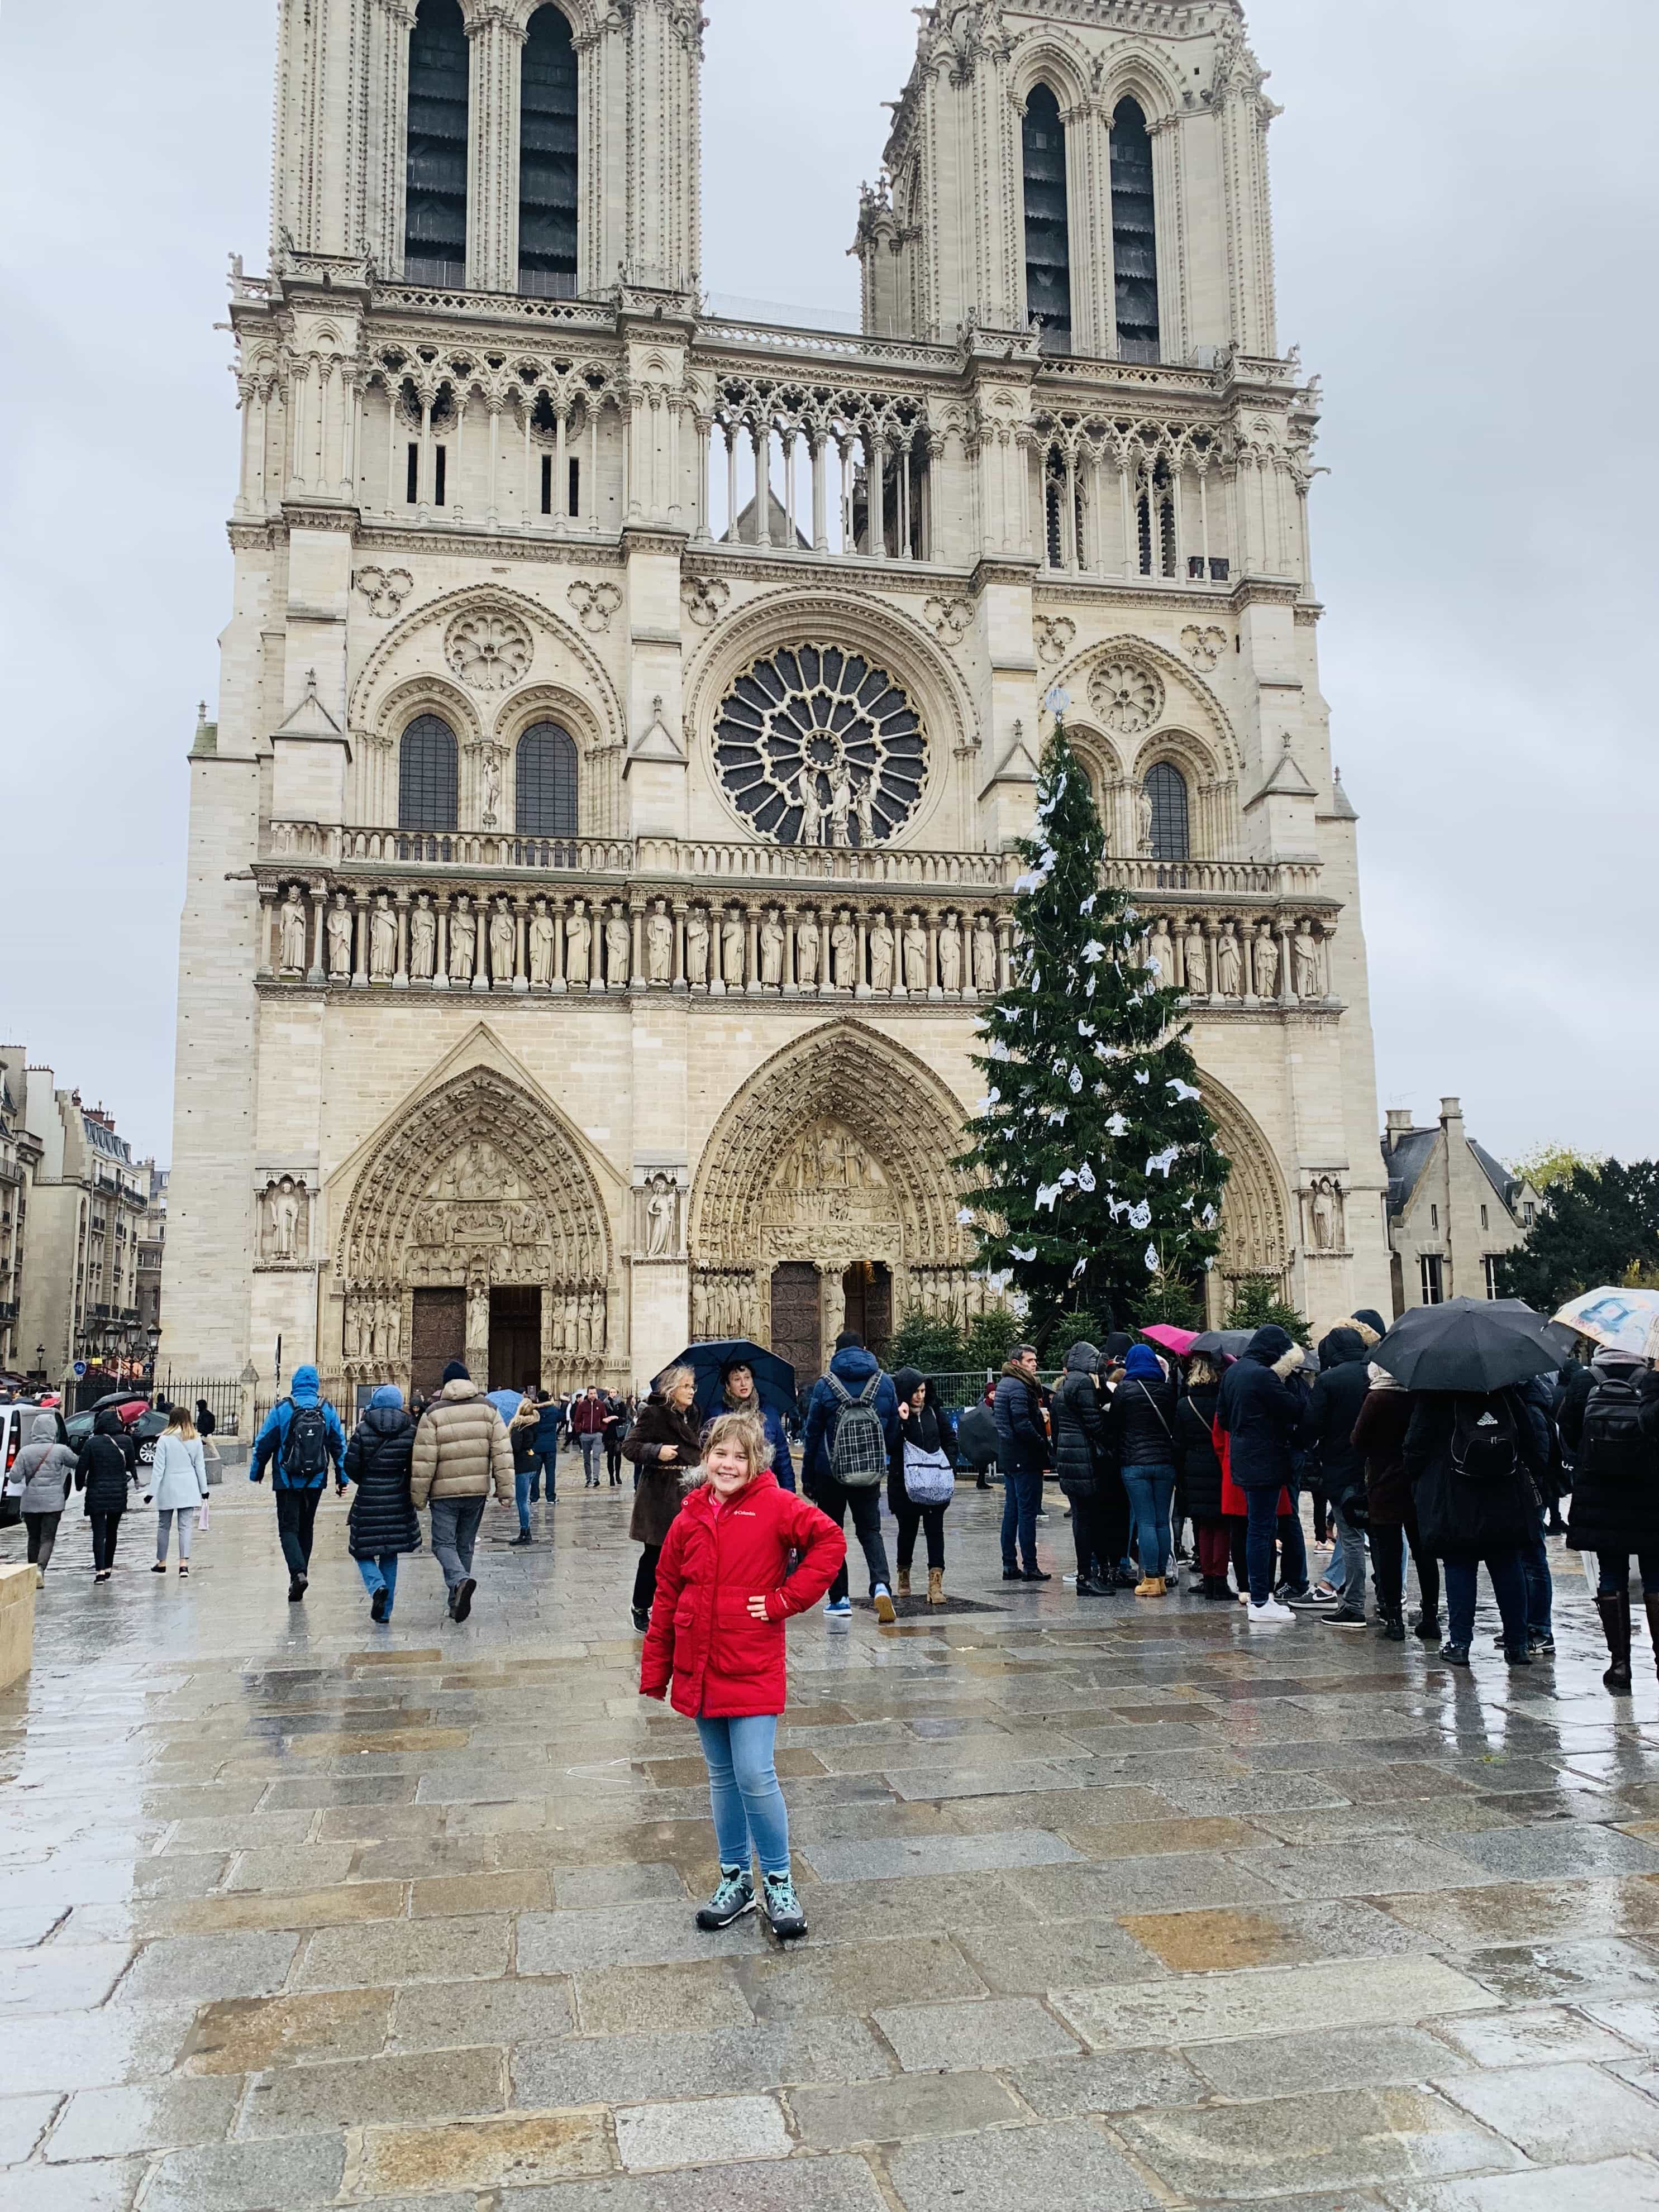 A group of people walking in front of Notre Dame de Paris